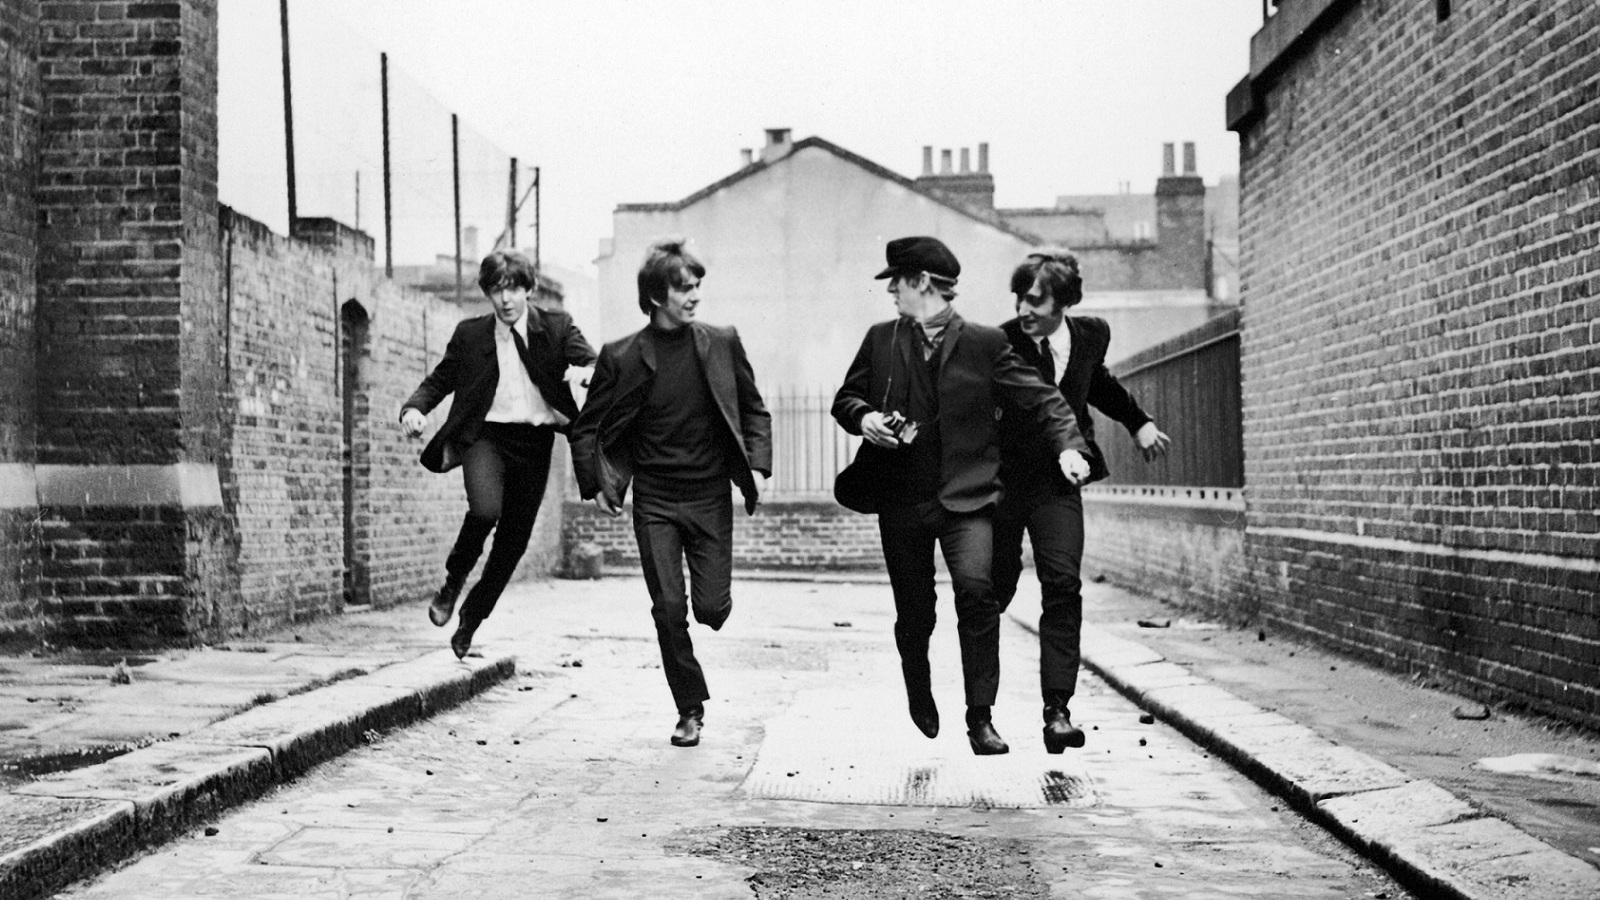 Music - The Beatles band photo wallpaper.jpg